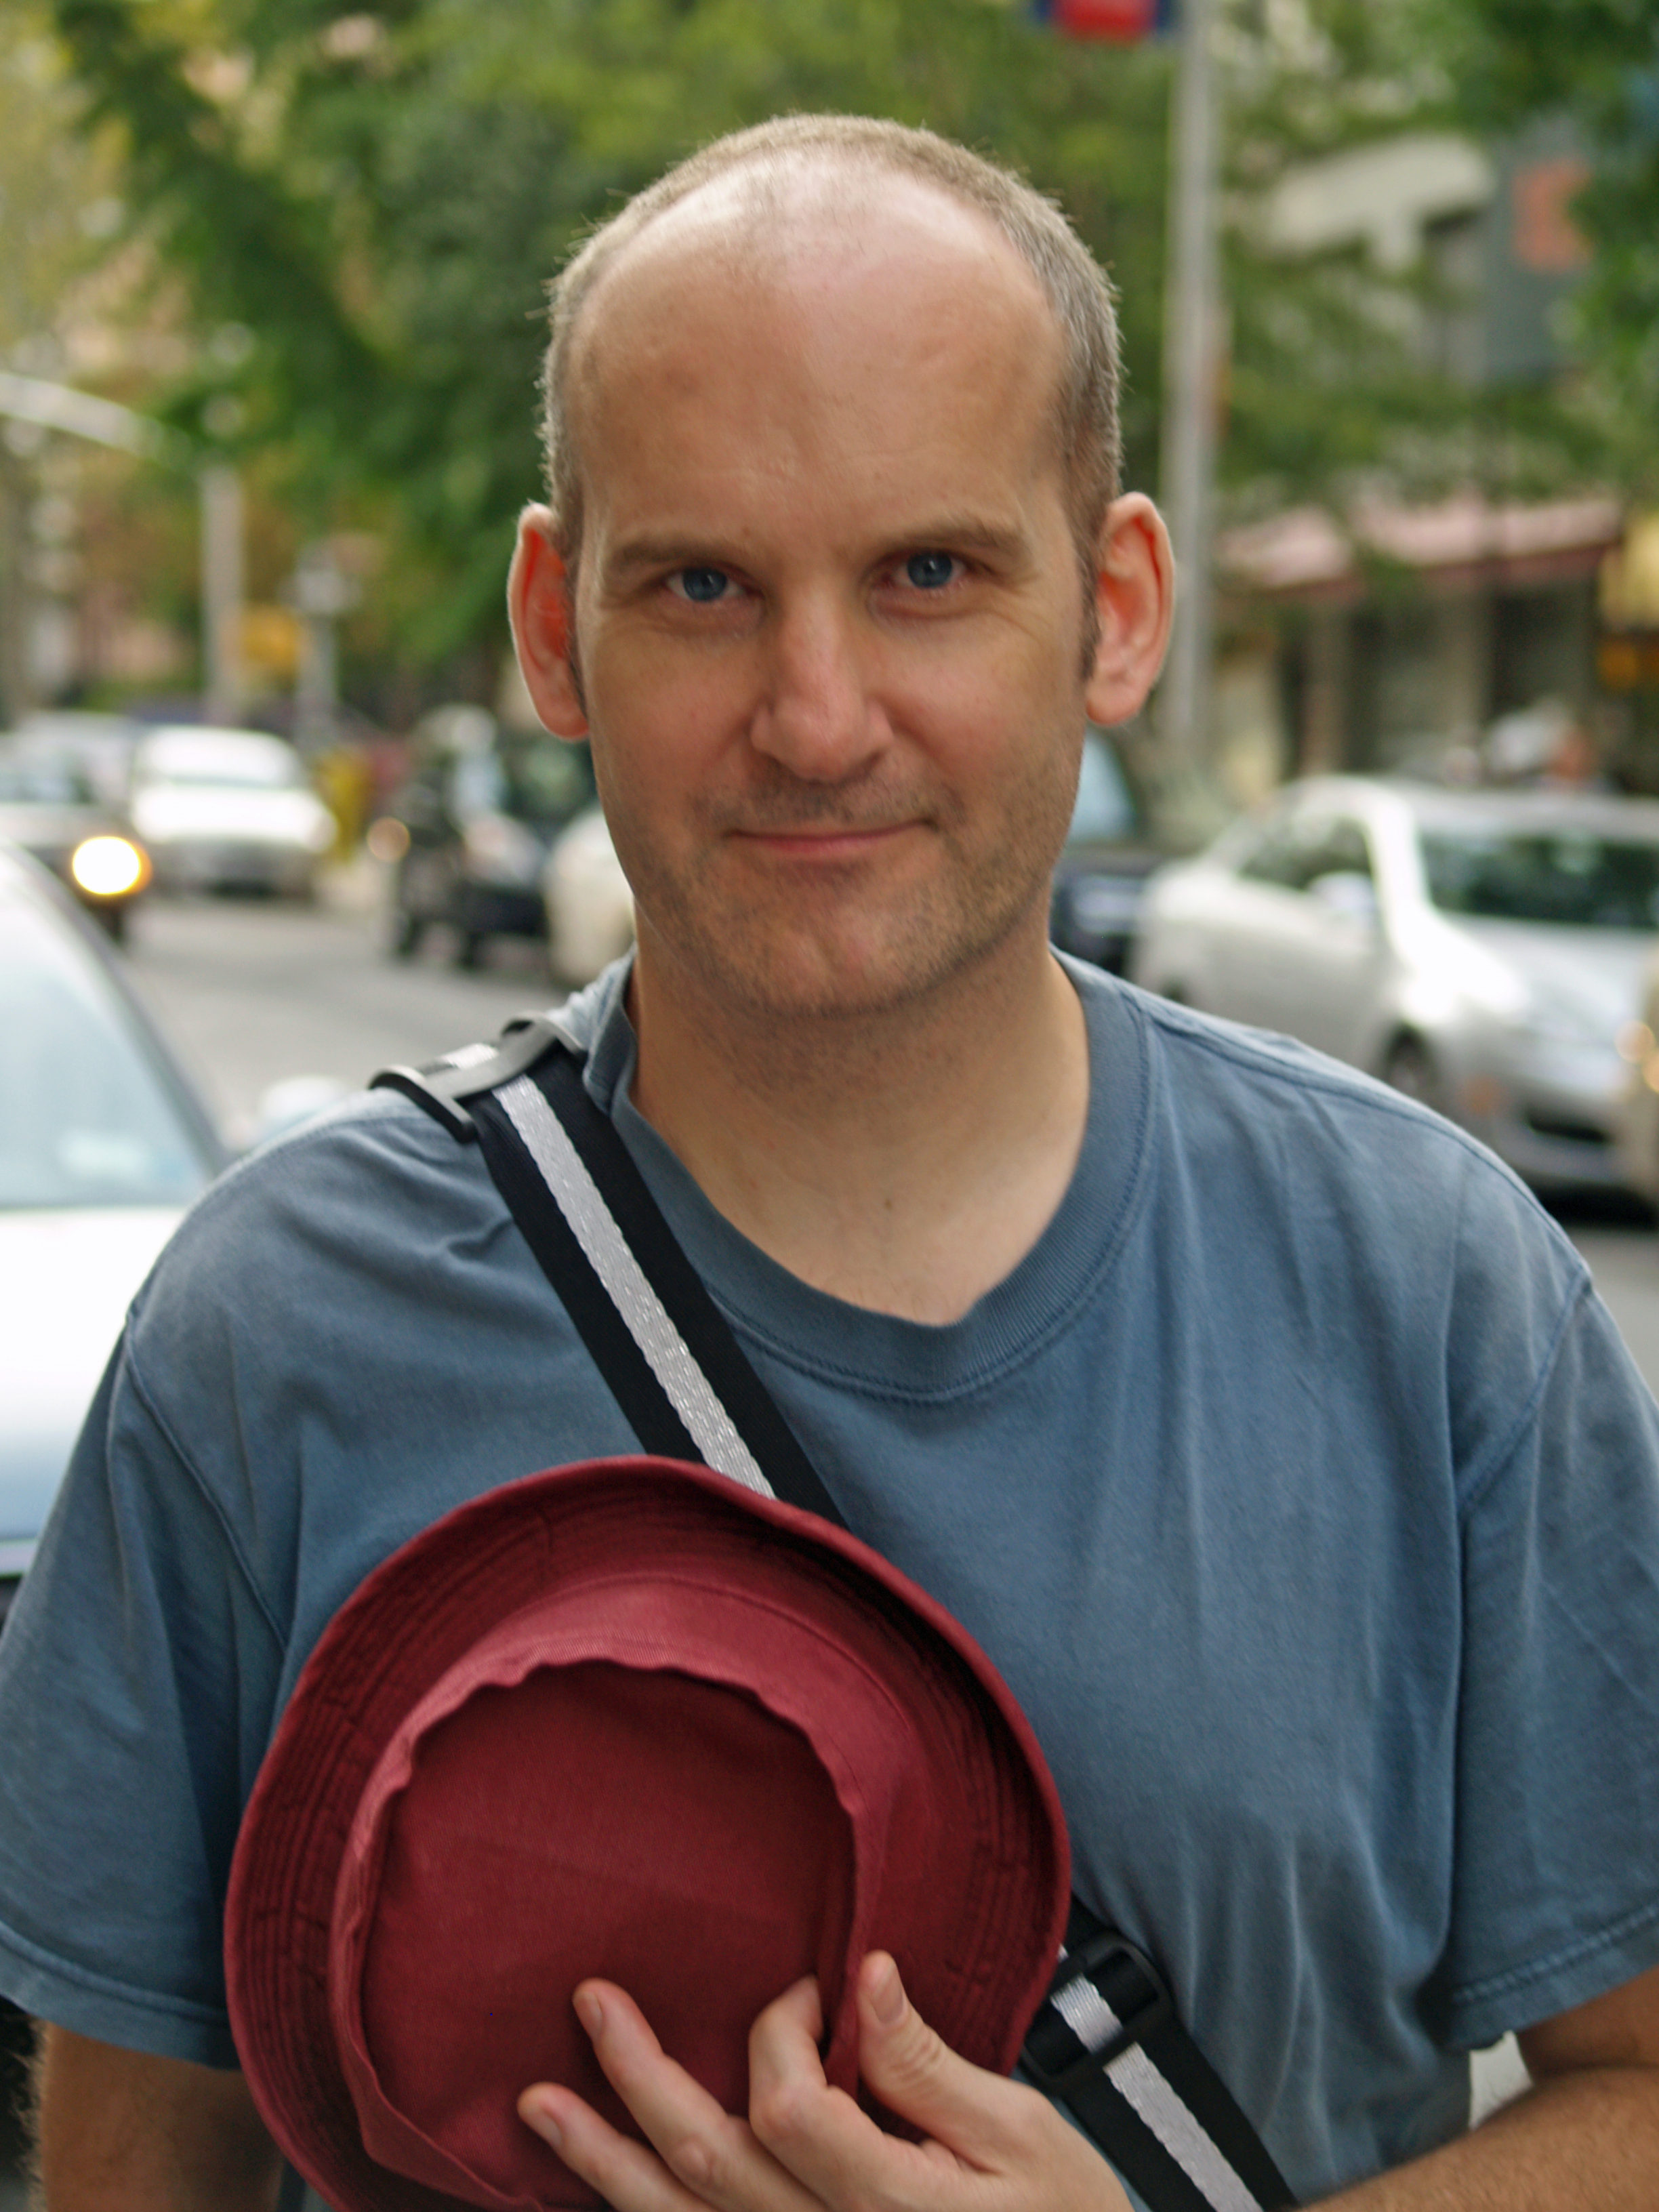 Ian MacKaye earned a  million dollar salary, leaving the net worth at 2 million in 2017